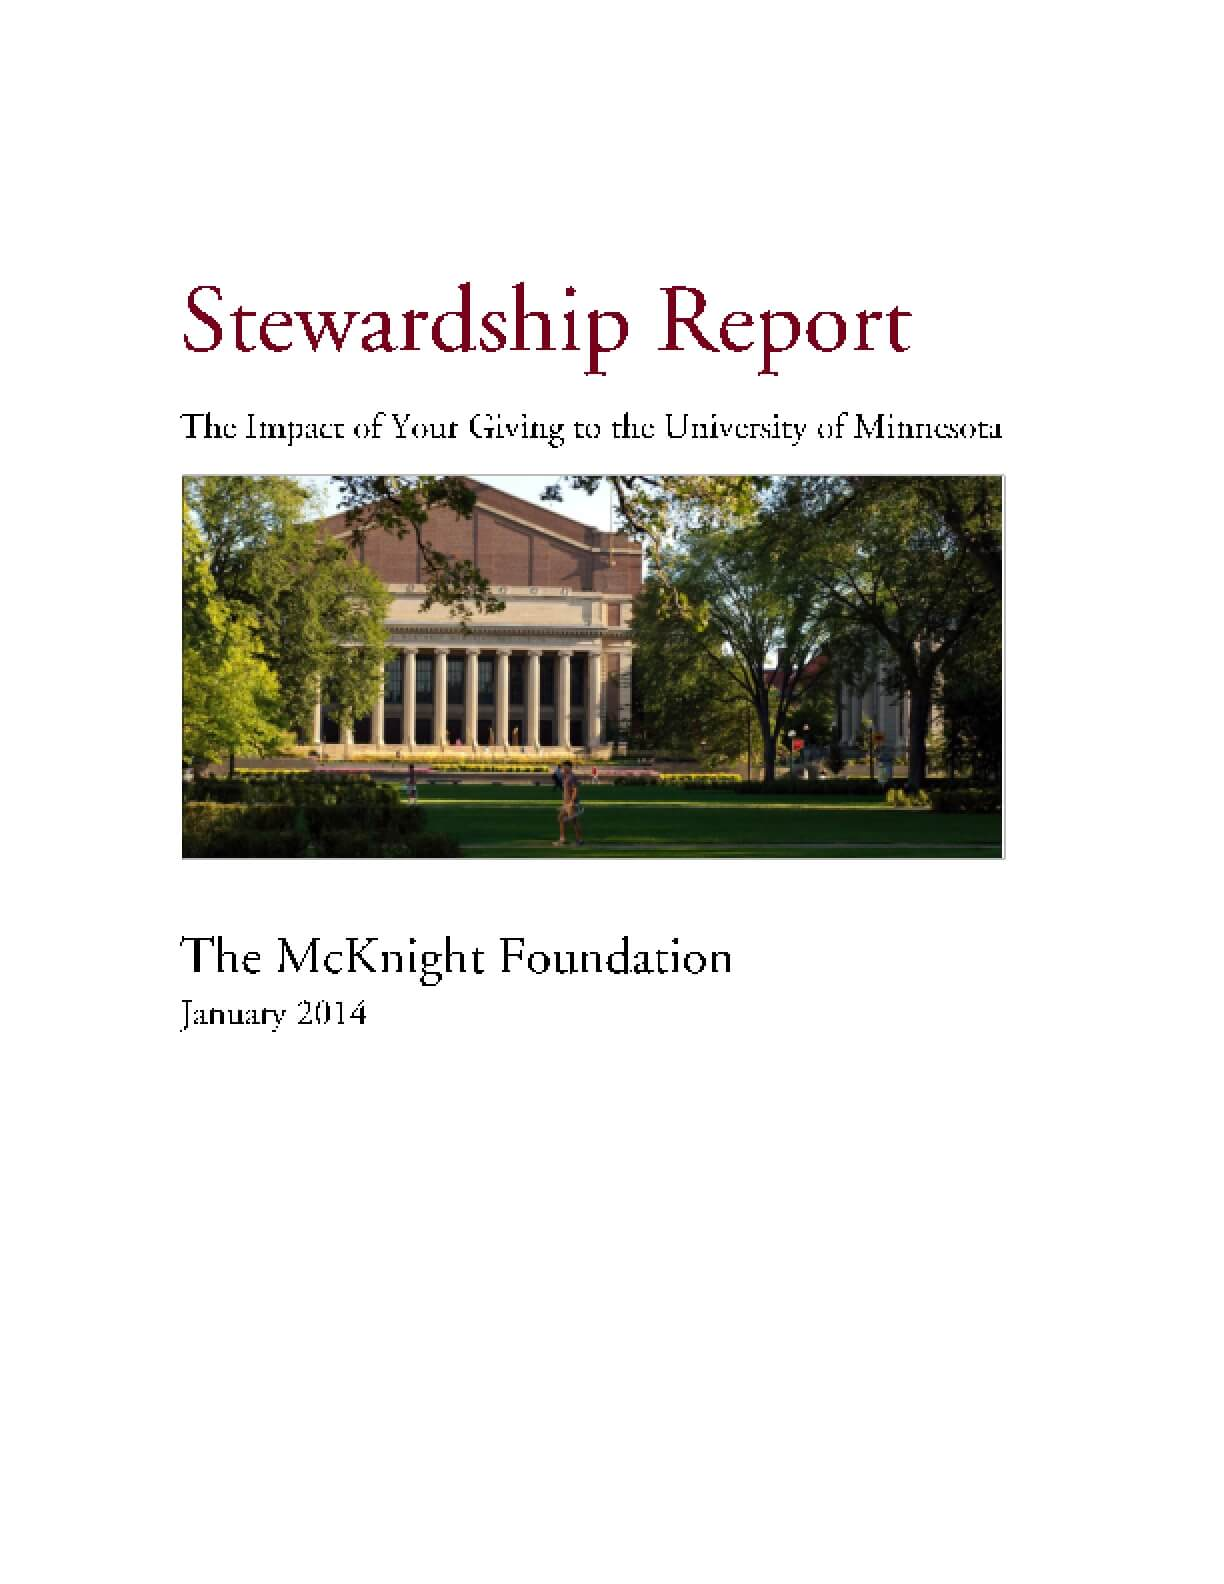 Stewardship Report from University of Minnesota: The Impact of Your Giving